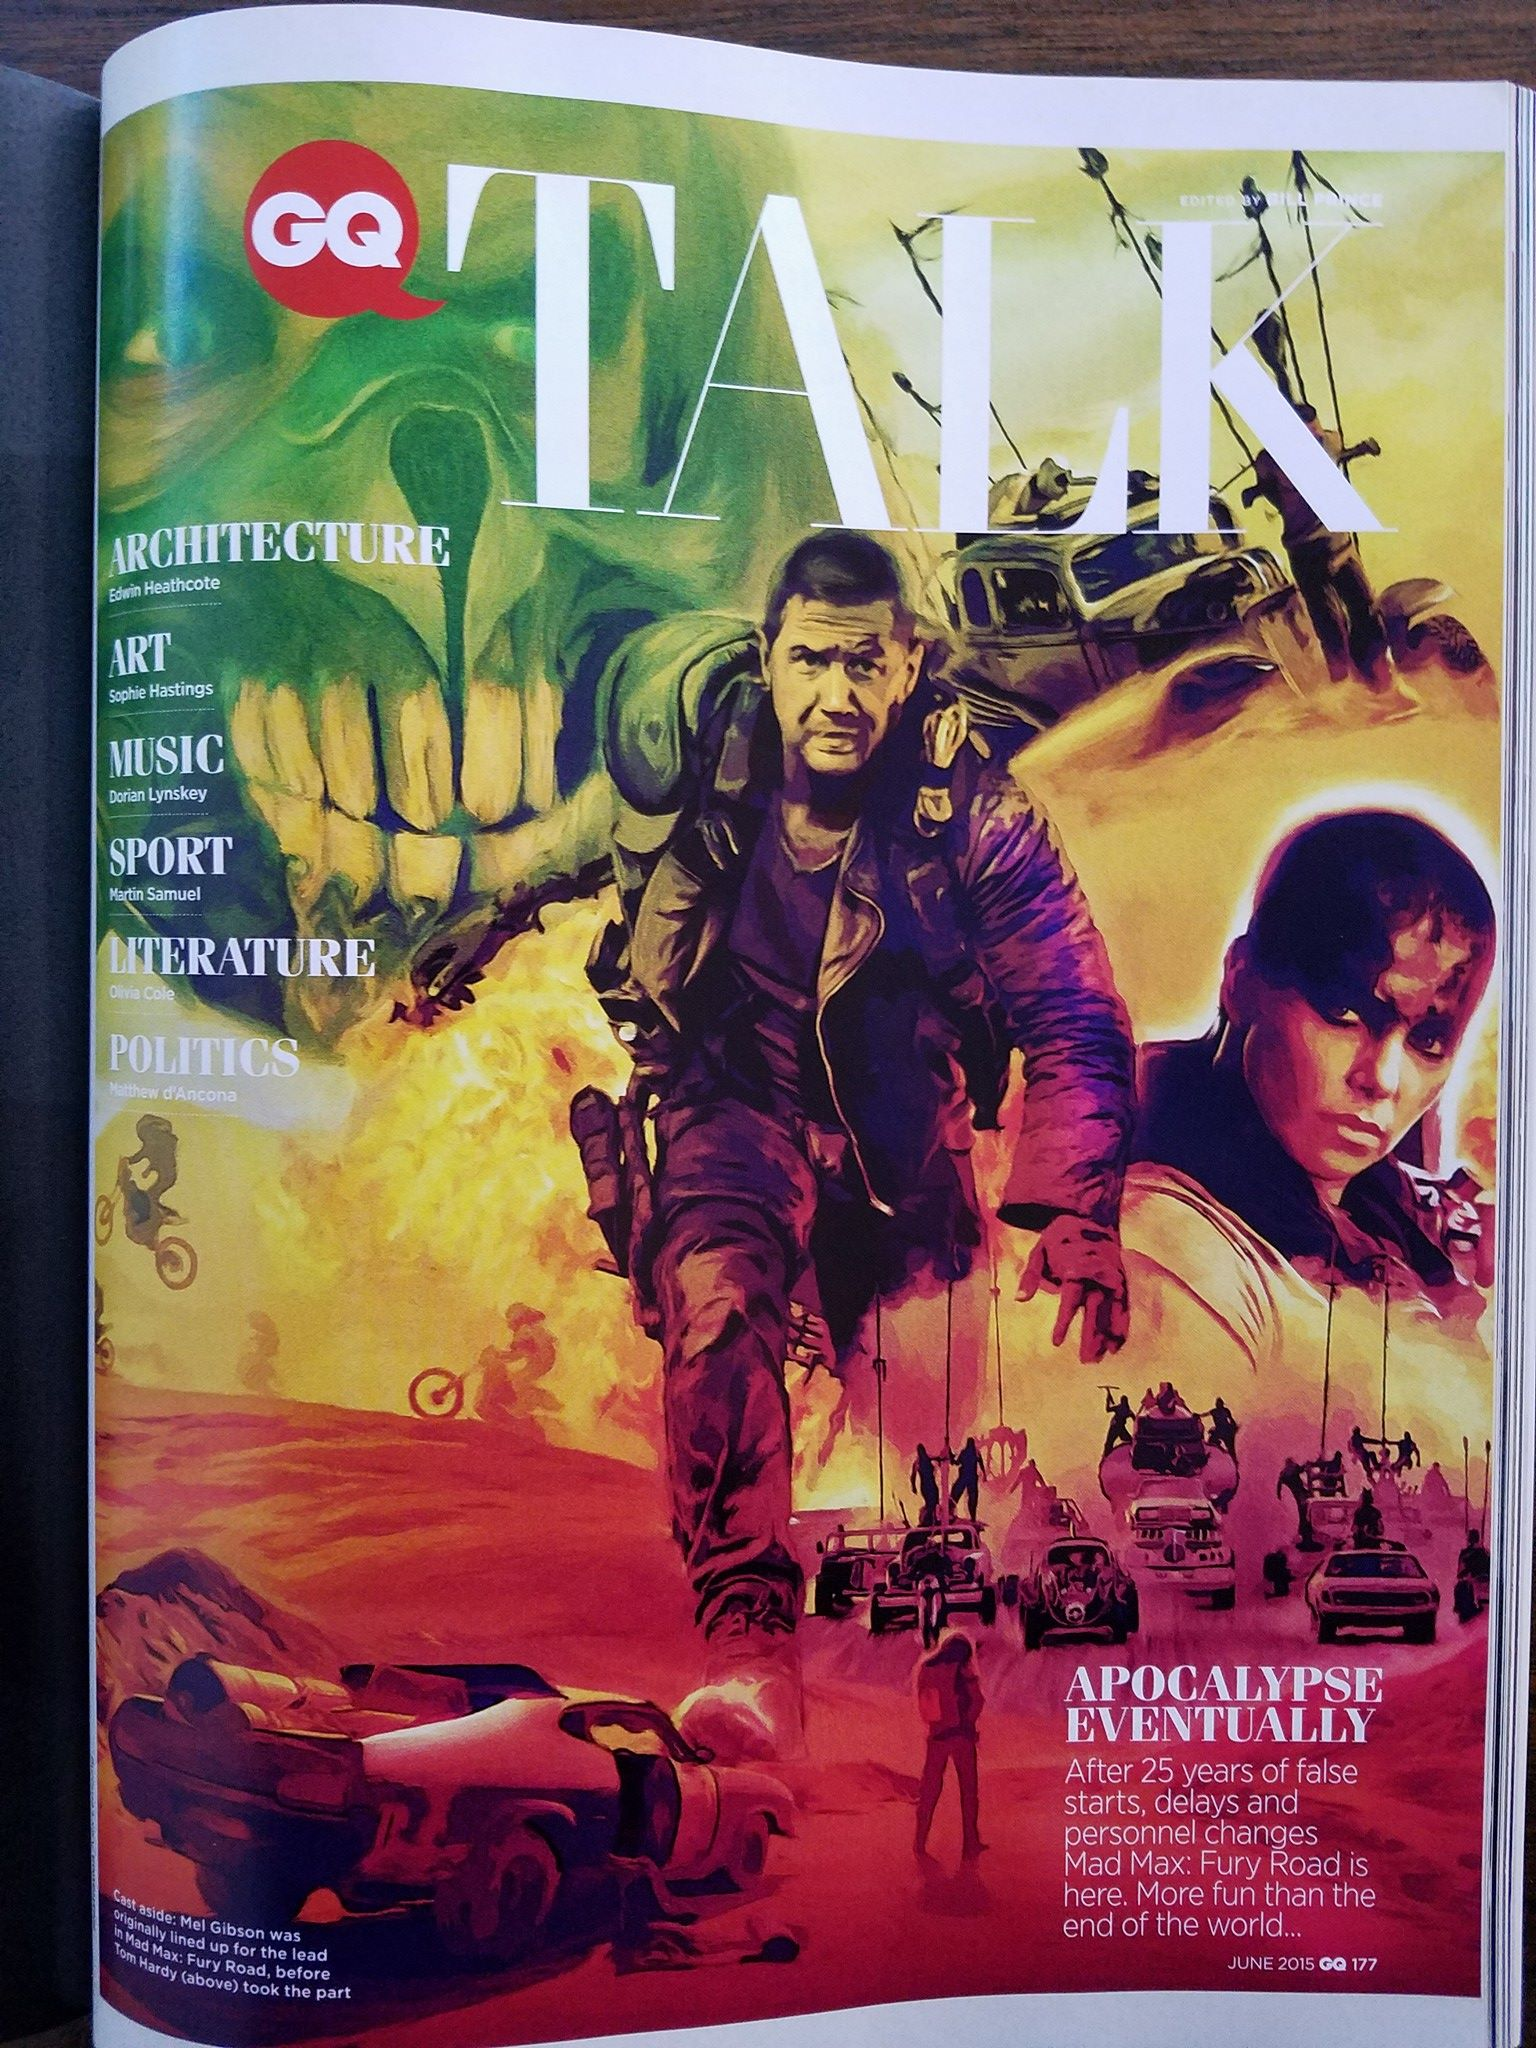 Mad Max Poster Design published in GQ Magazine